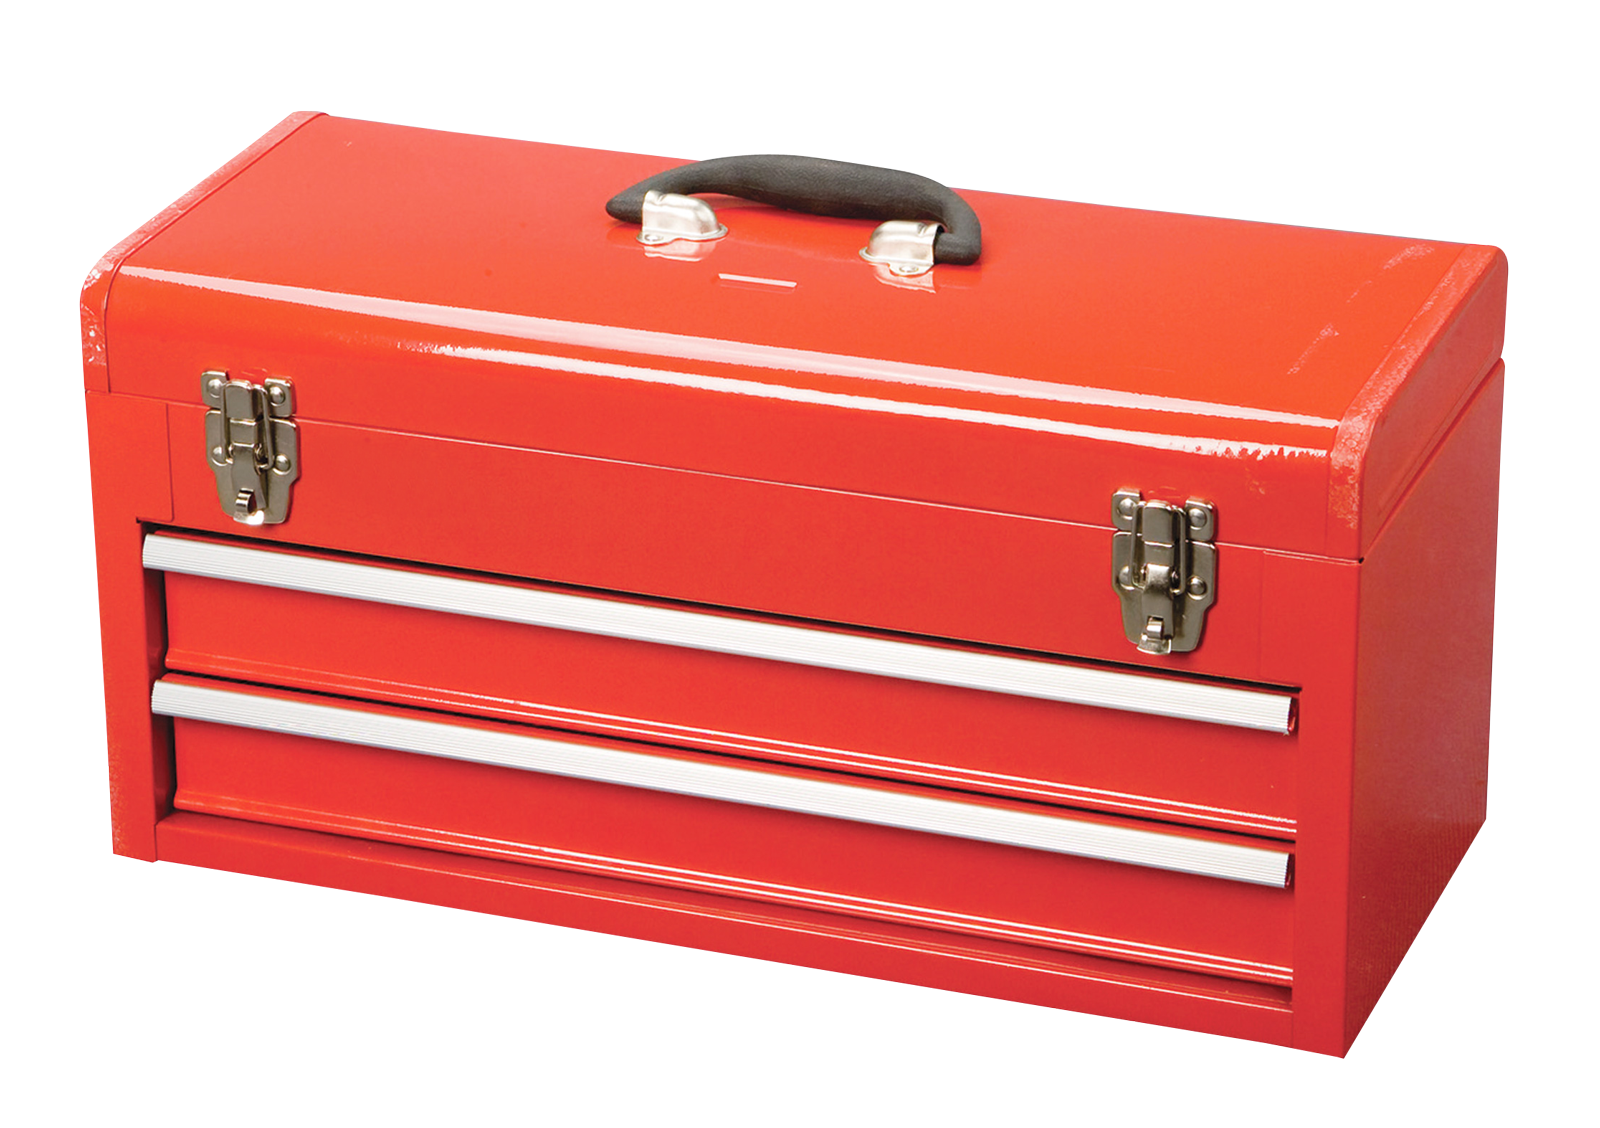 Toolbox Png Image Tool Box Torch Light Object